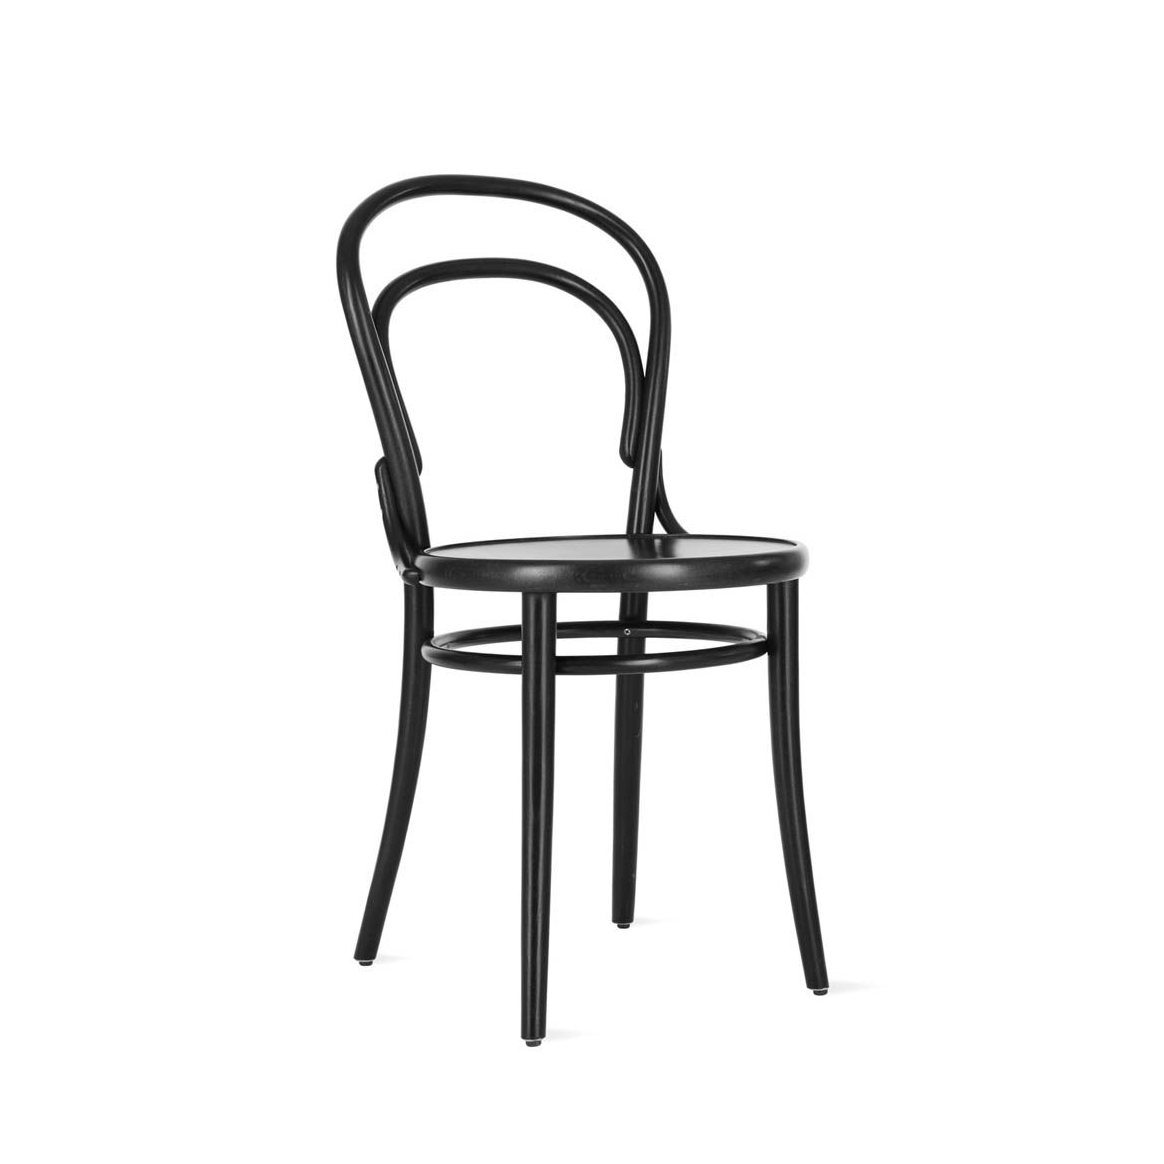 214 Chair By Michael Thonet For Thonet Up Interiors